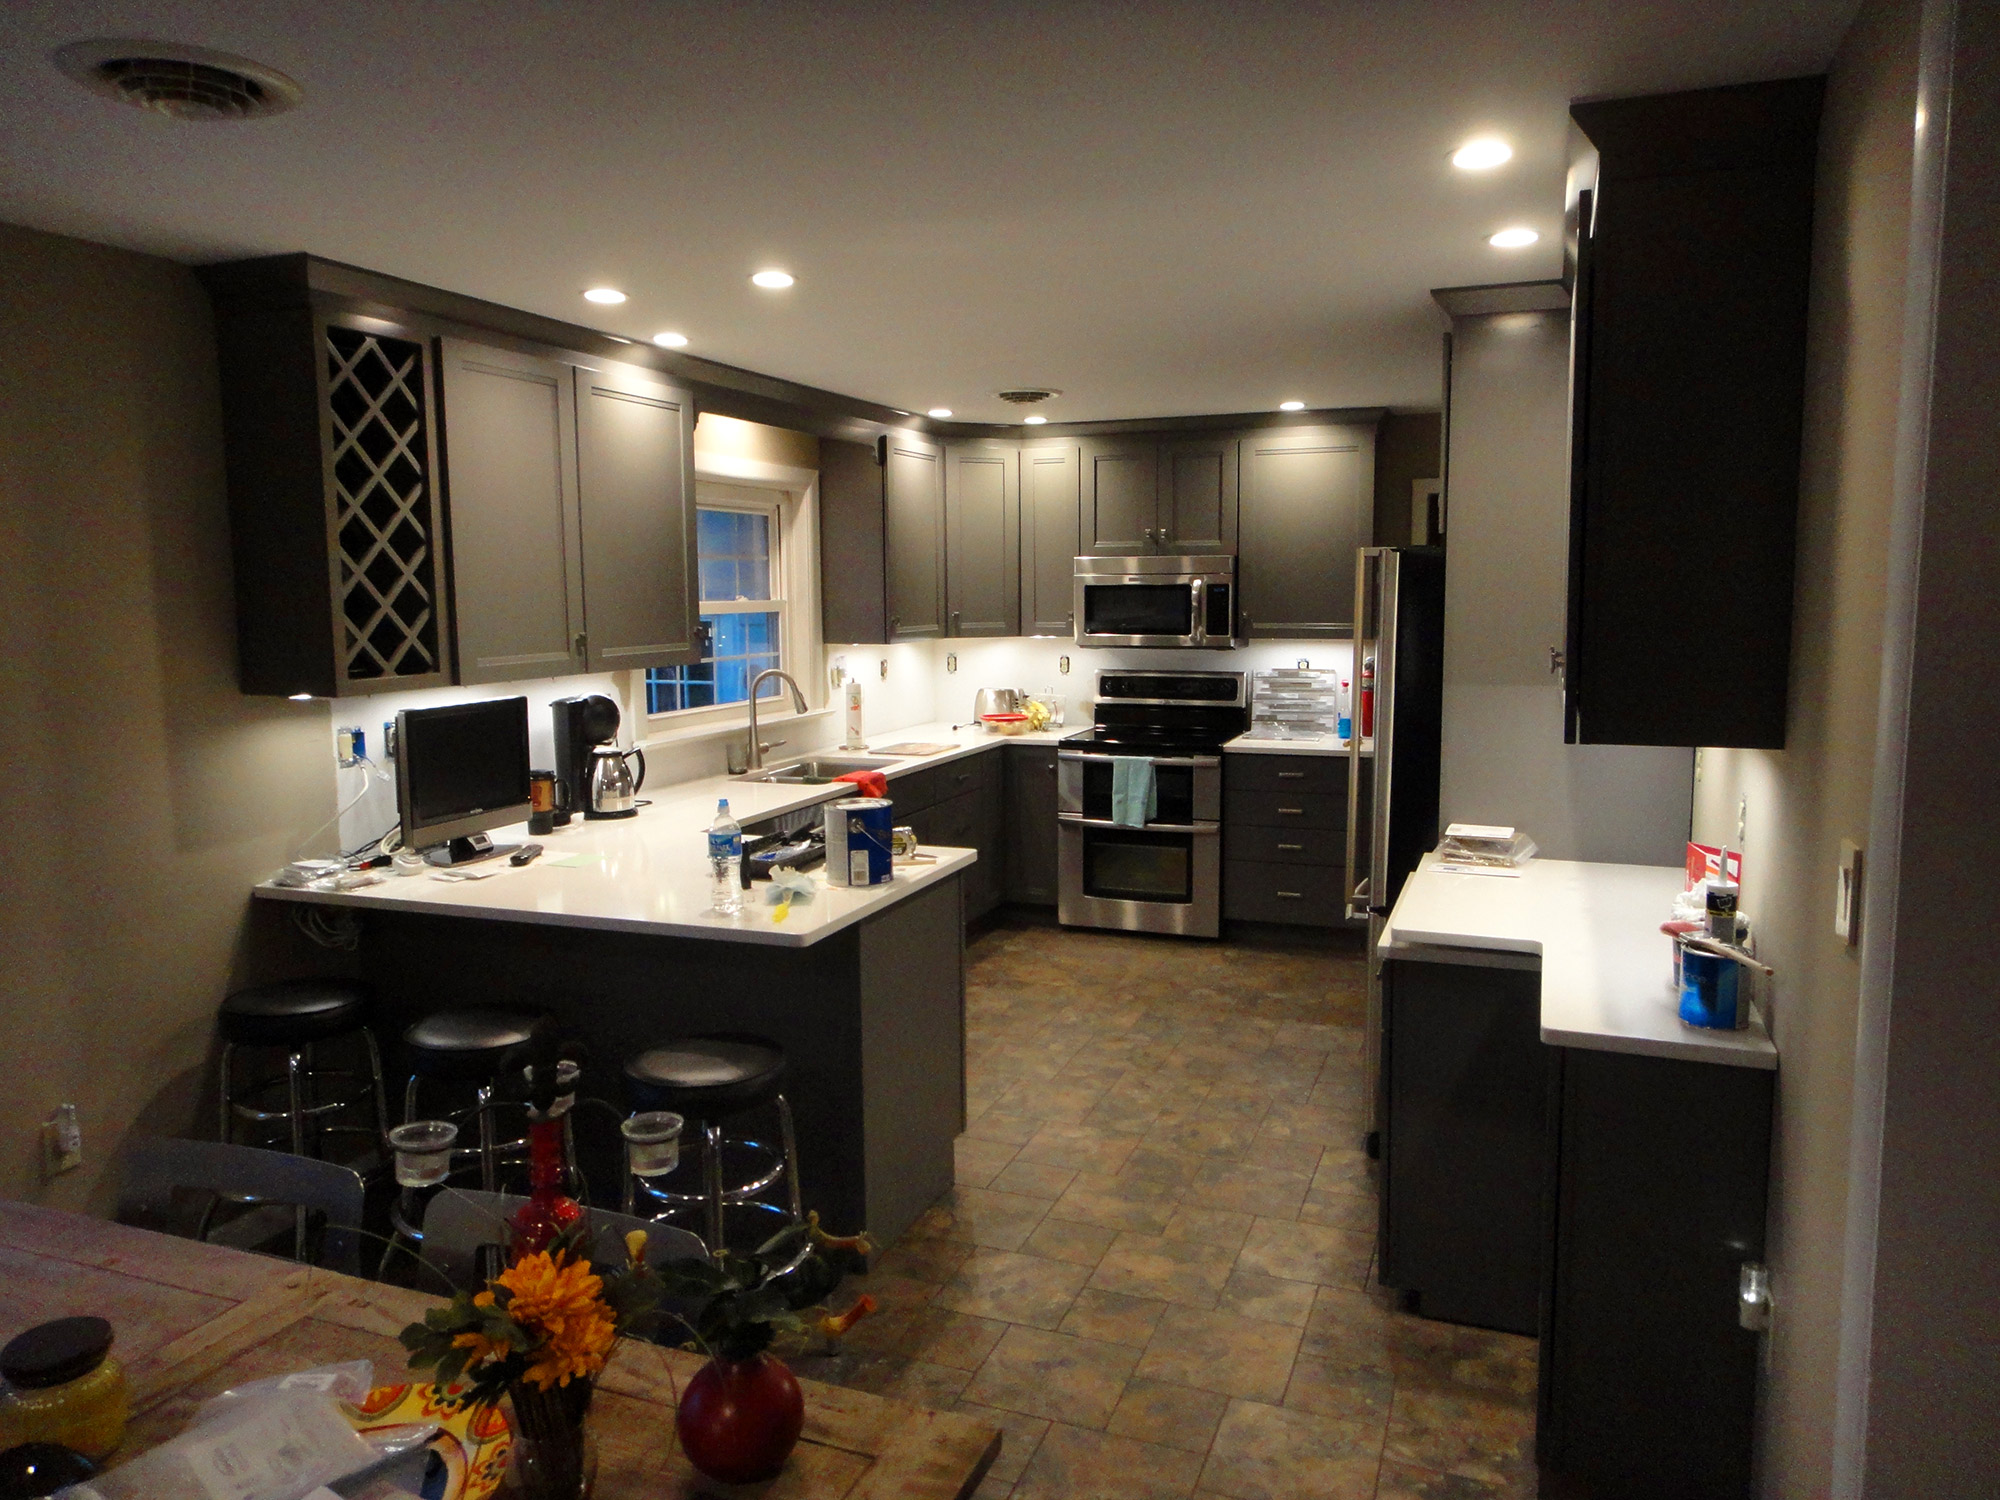 Kitchen Dining Room Remodel Kitchen Dining Room Remodel Wyomissing Pa Bodden